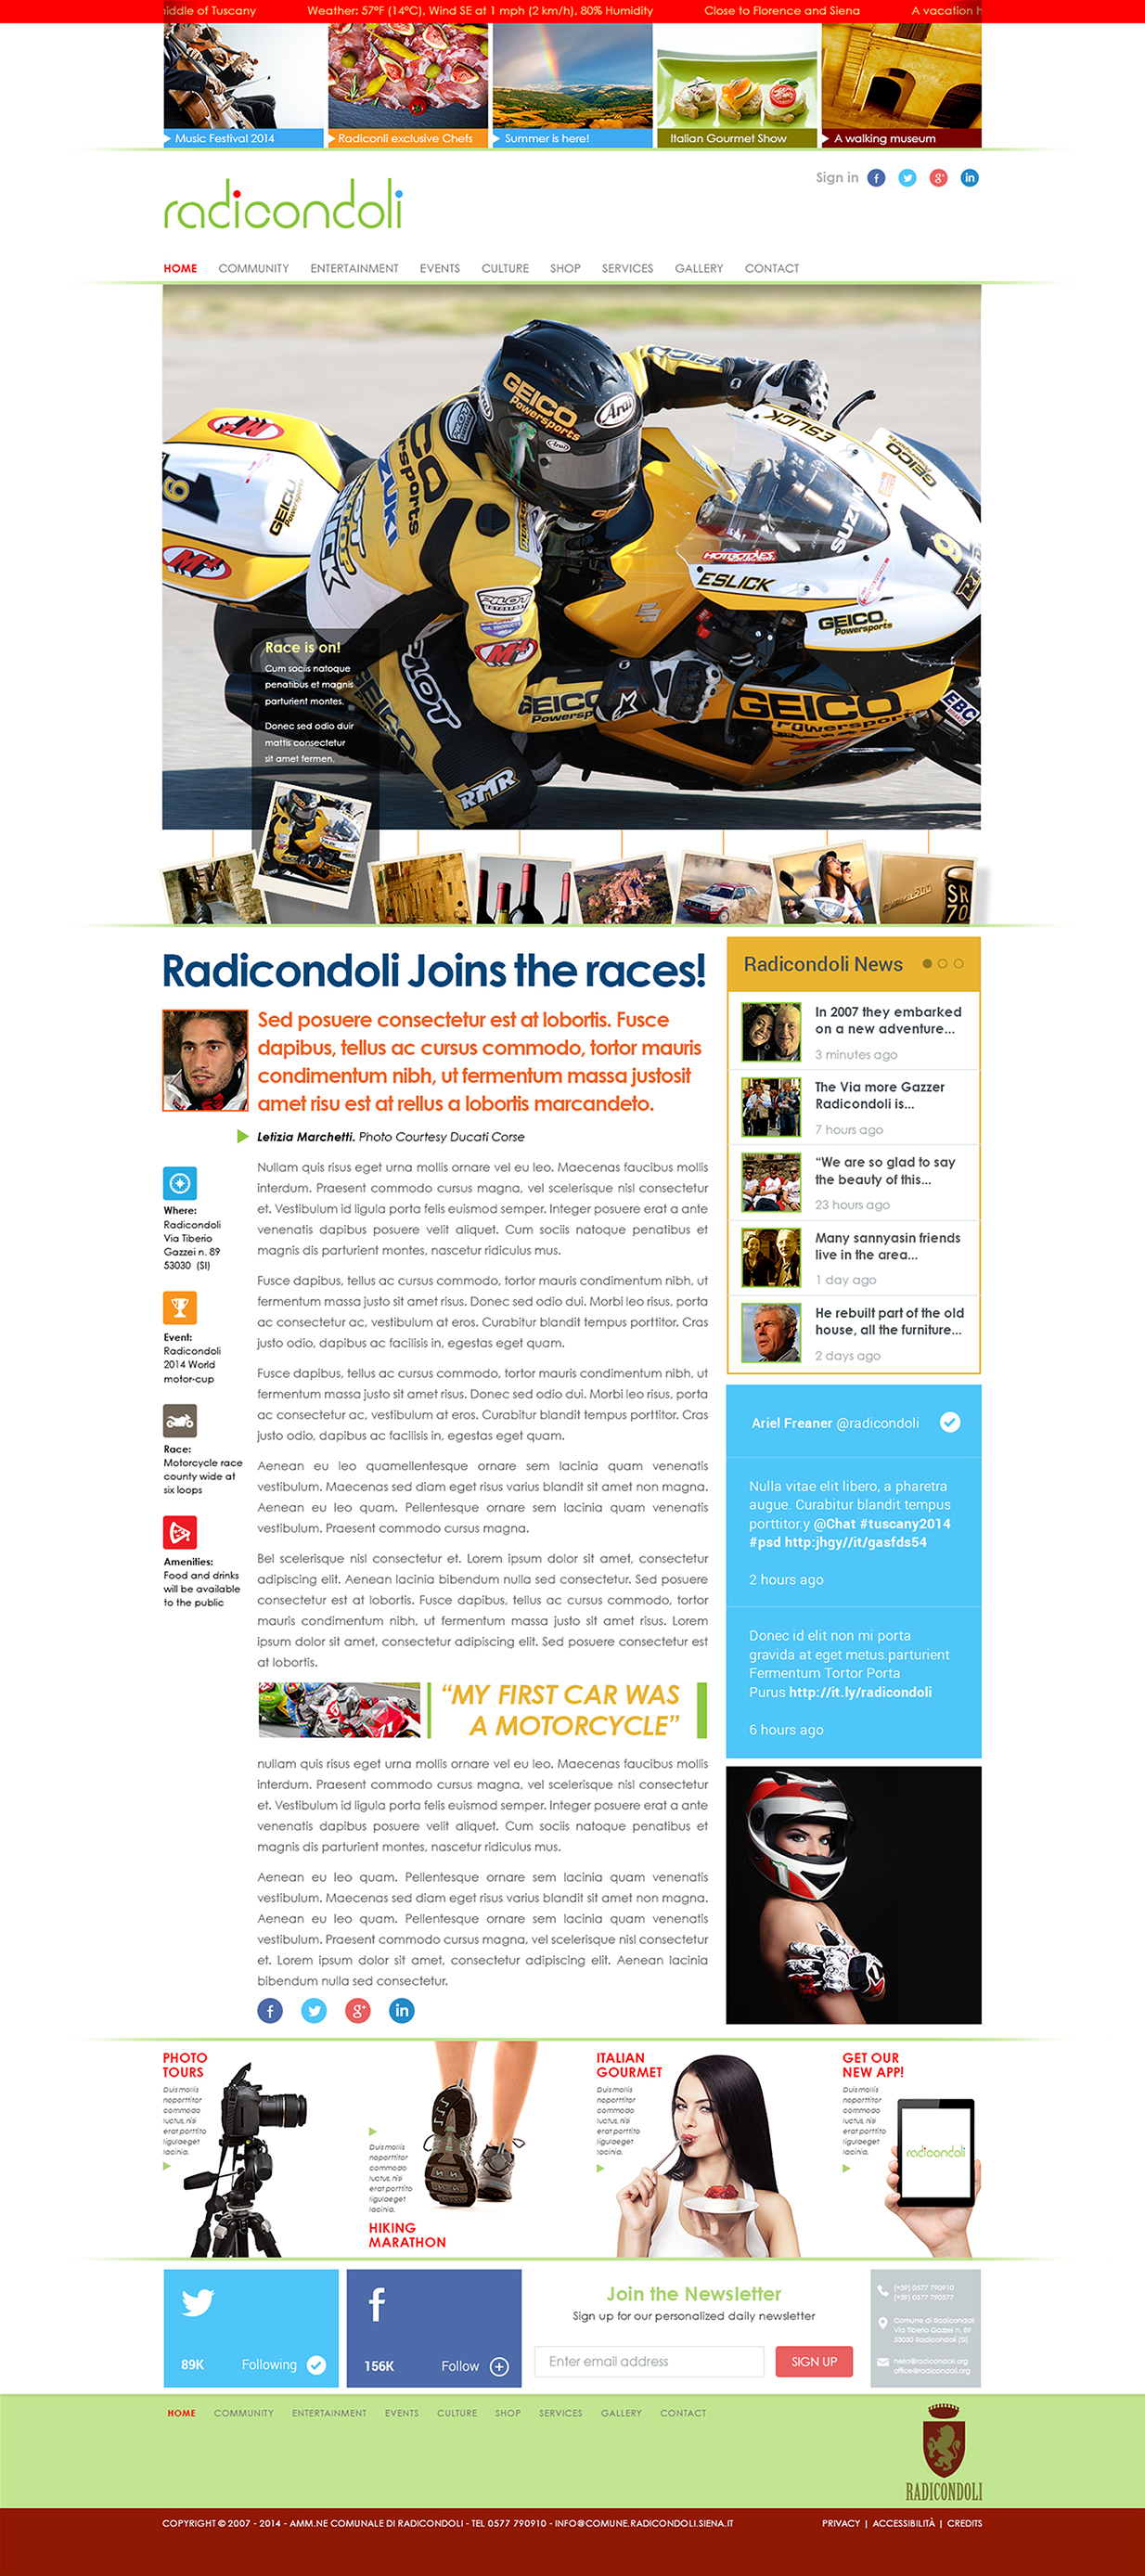 Radicondoli-Website-001-front-page